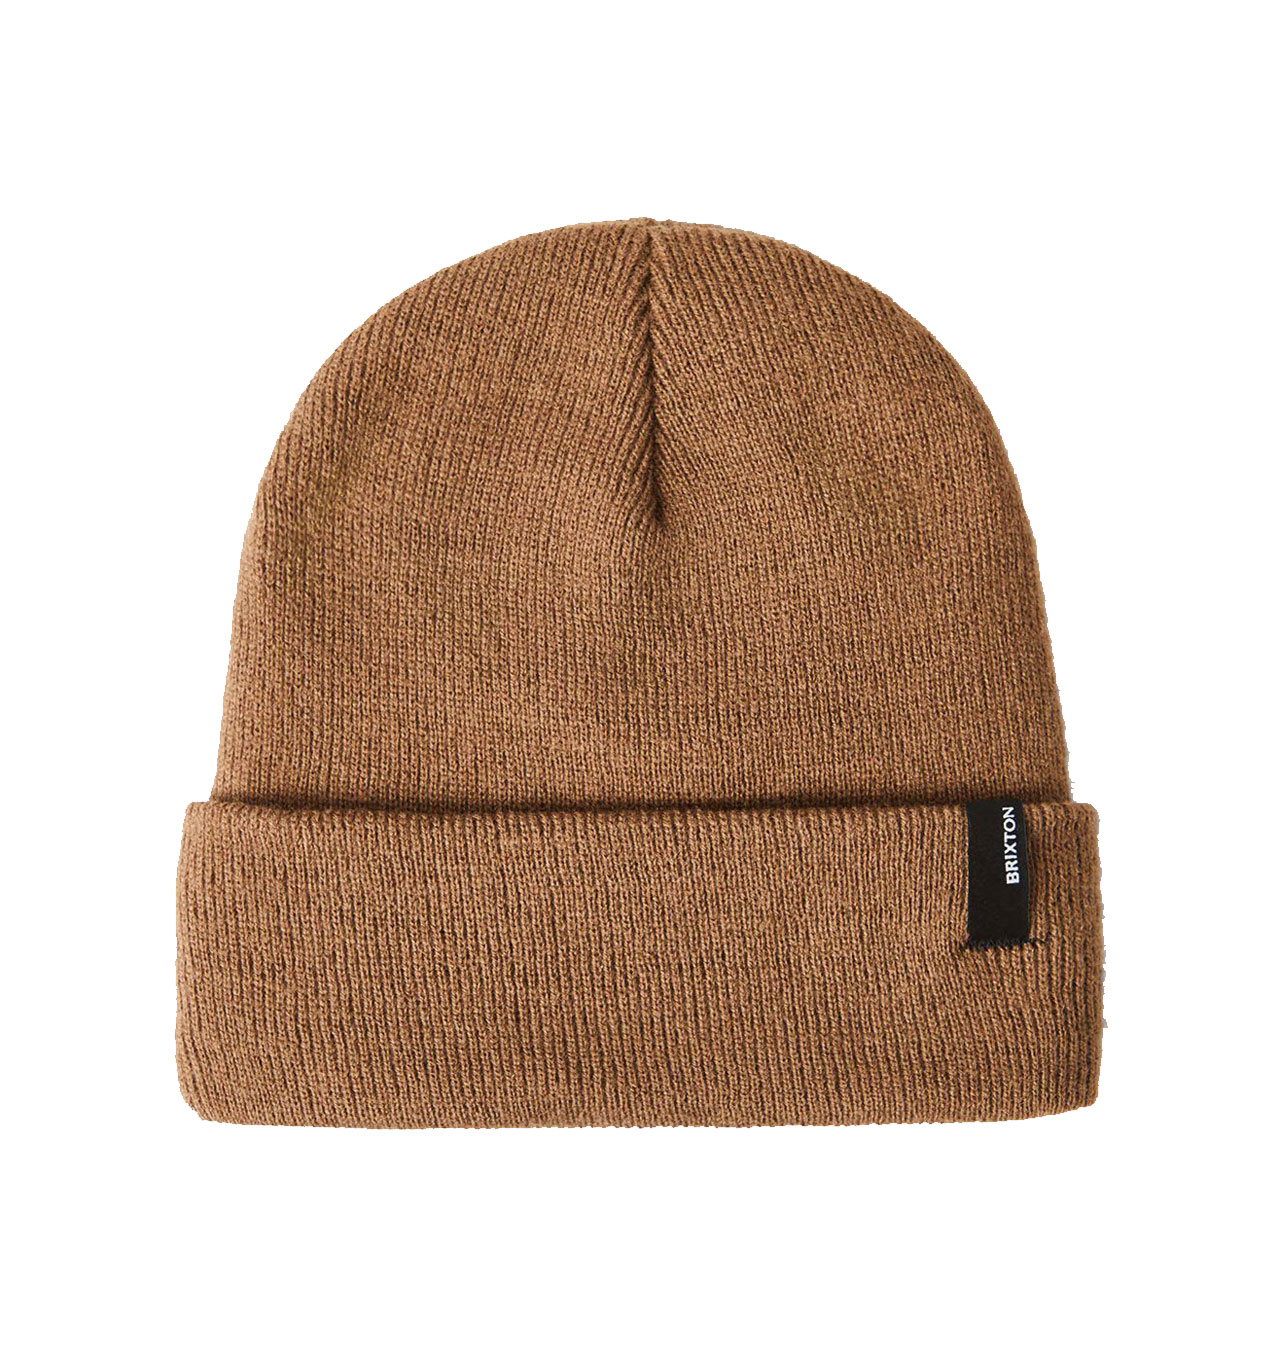 Brixton---Harbor-Watch-Cap-Beanie---Coyote-Brown3